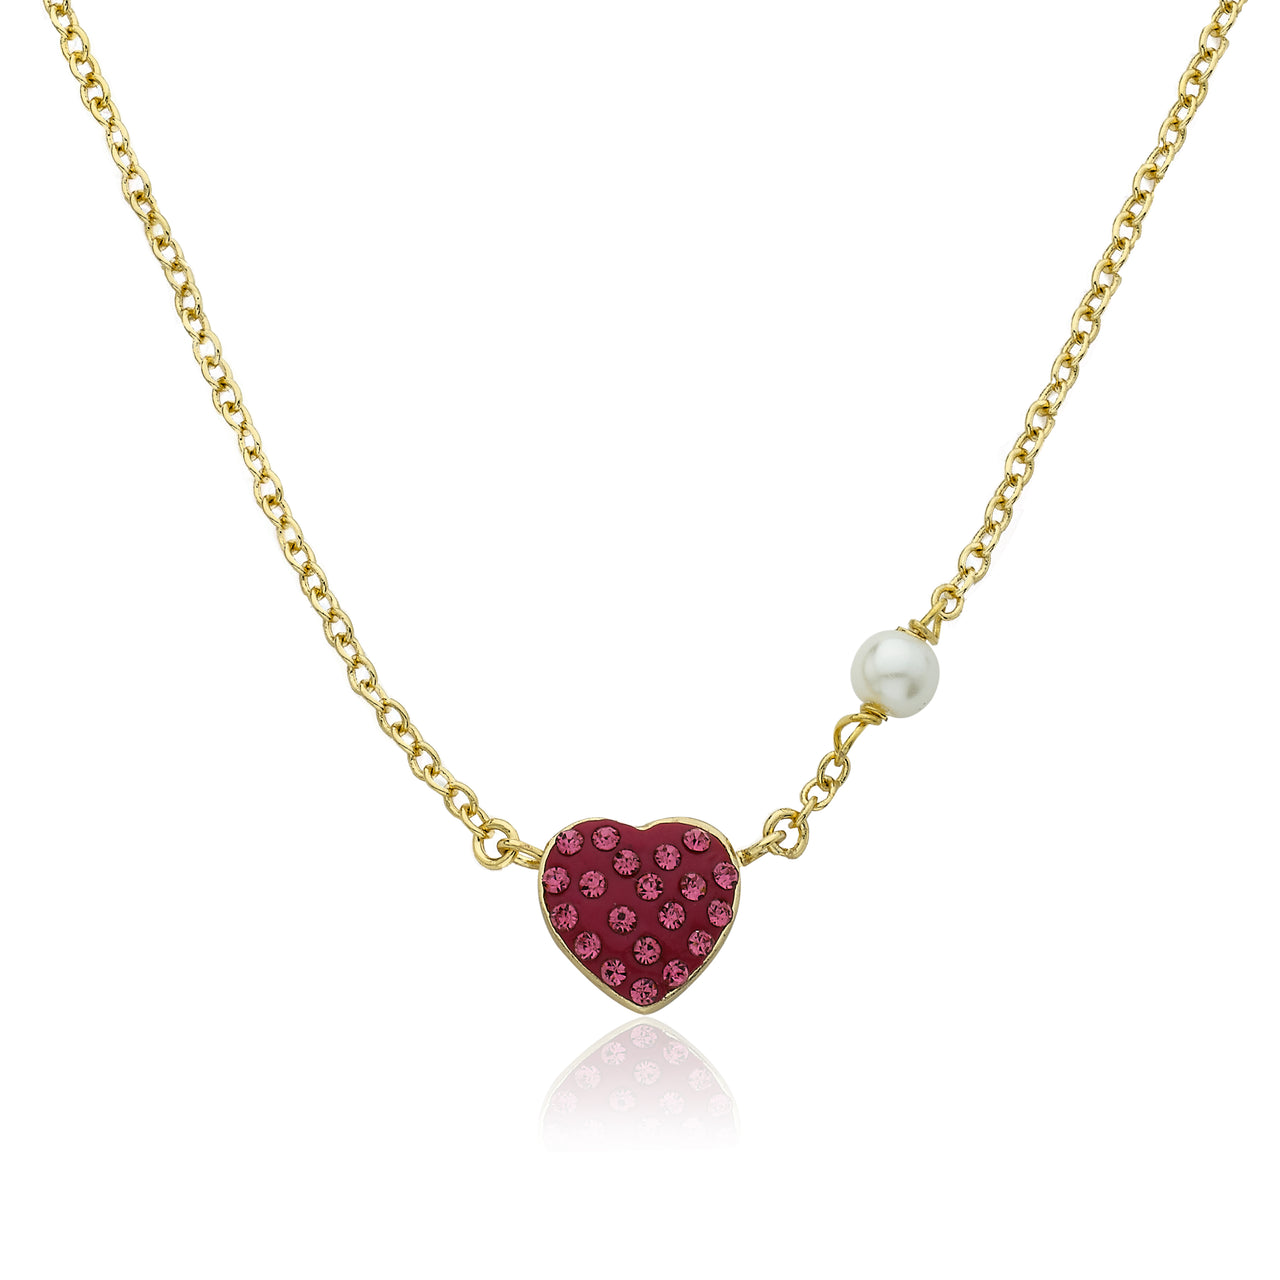 Heart Of Jewels Crystal Heart Key Chain Necklace